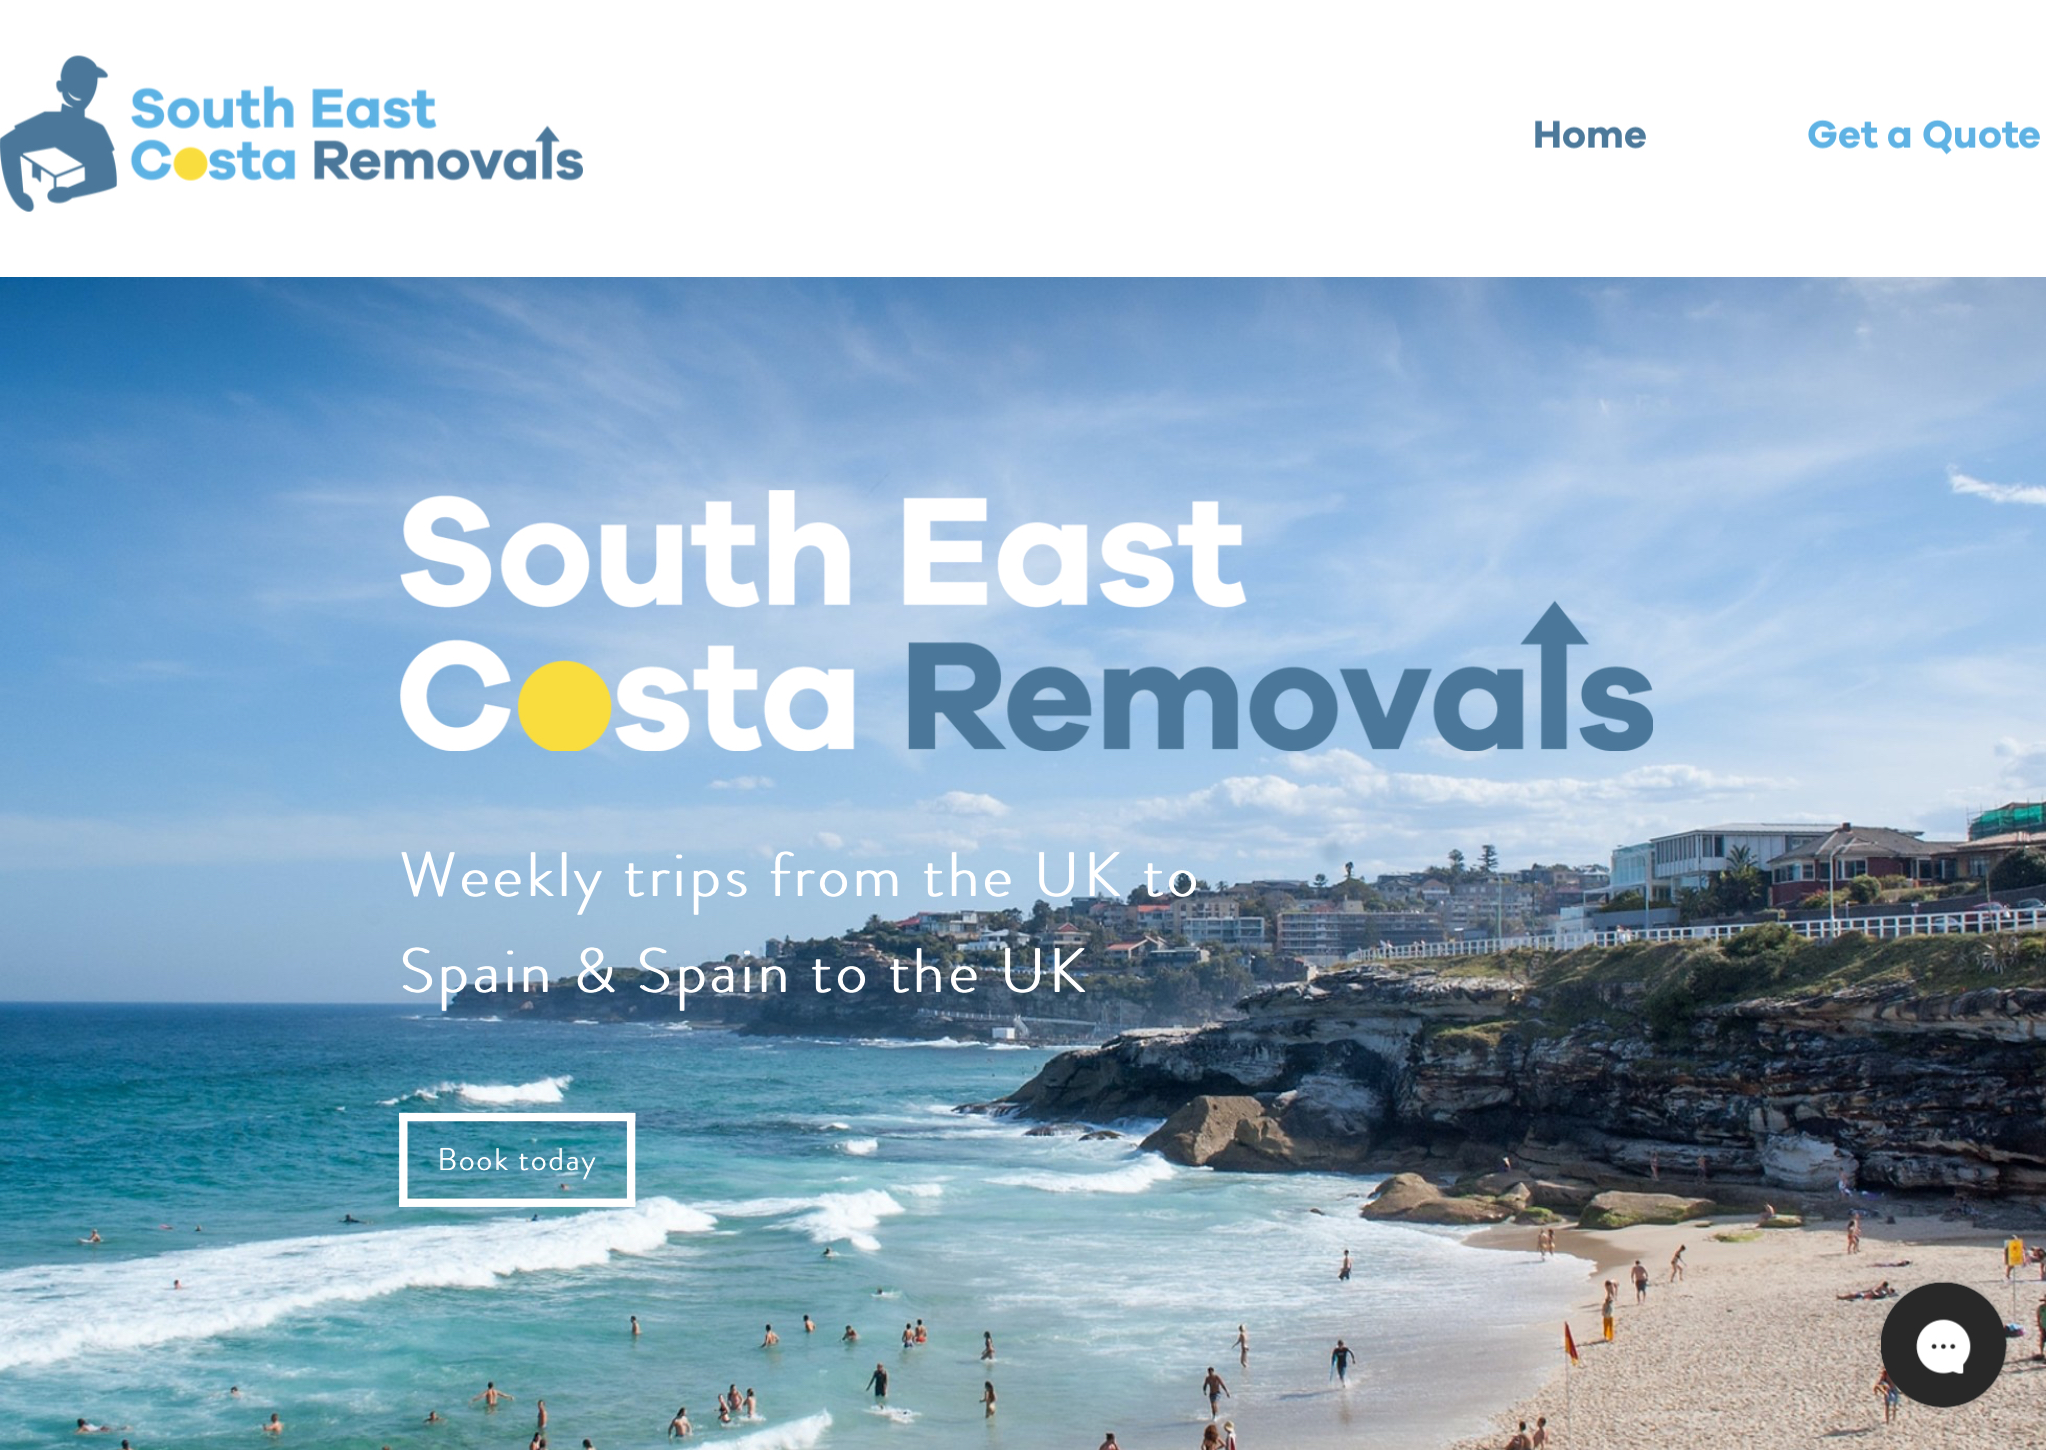 South East Costa Removals